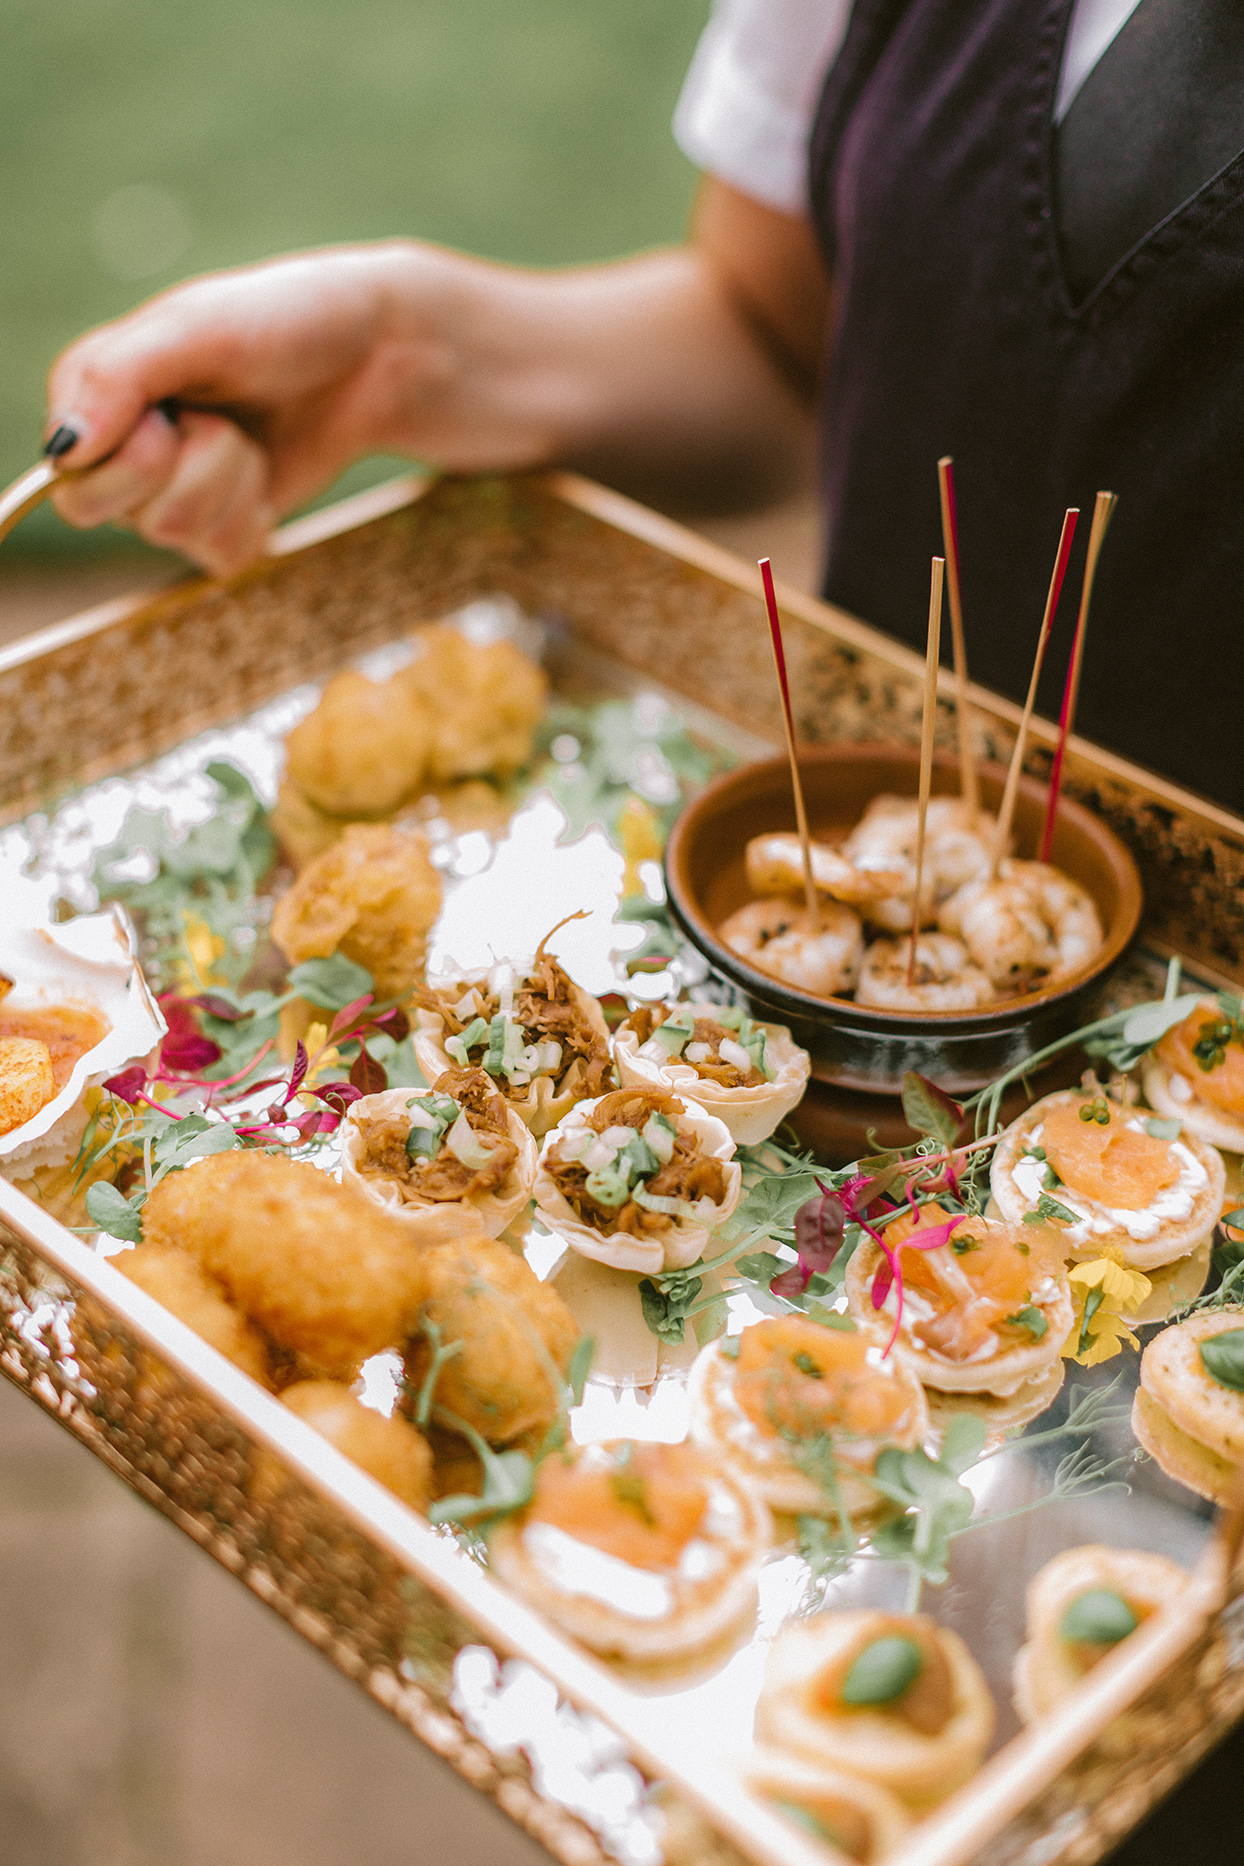 appetizer food on ornate tray in server's hands